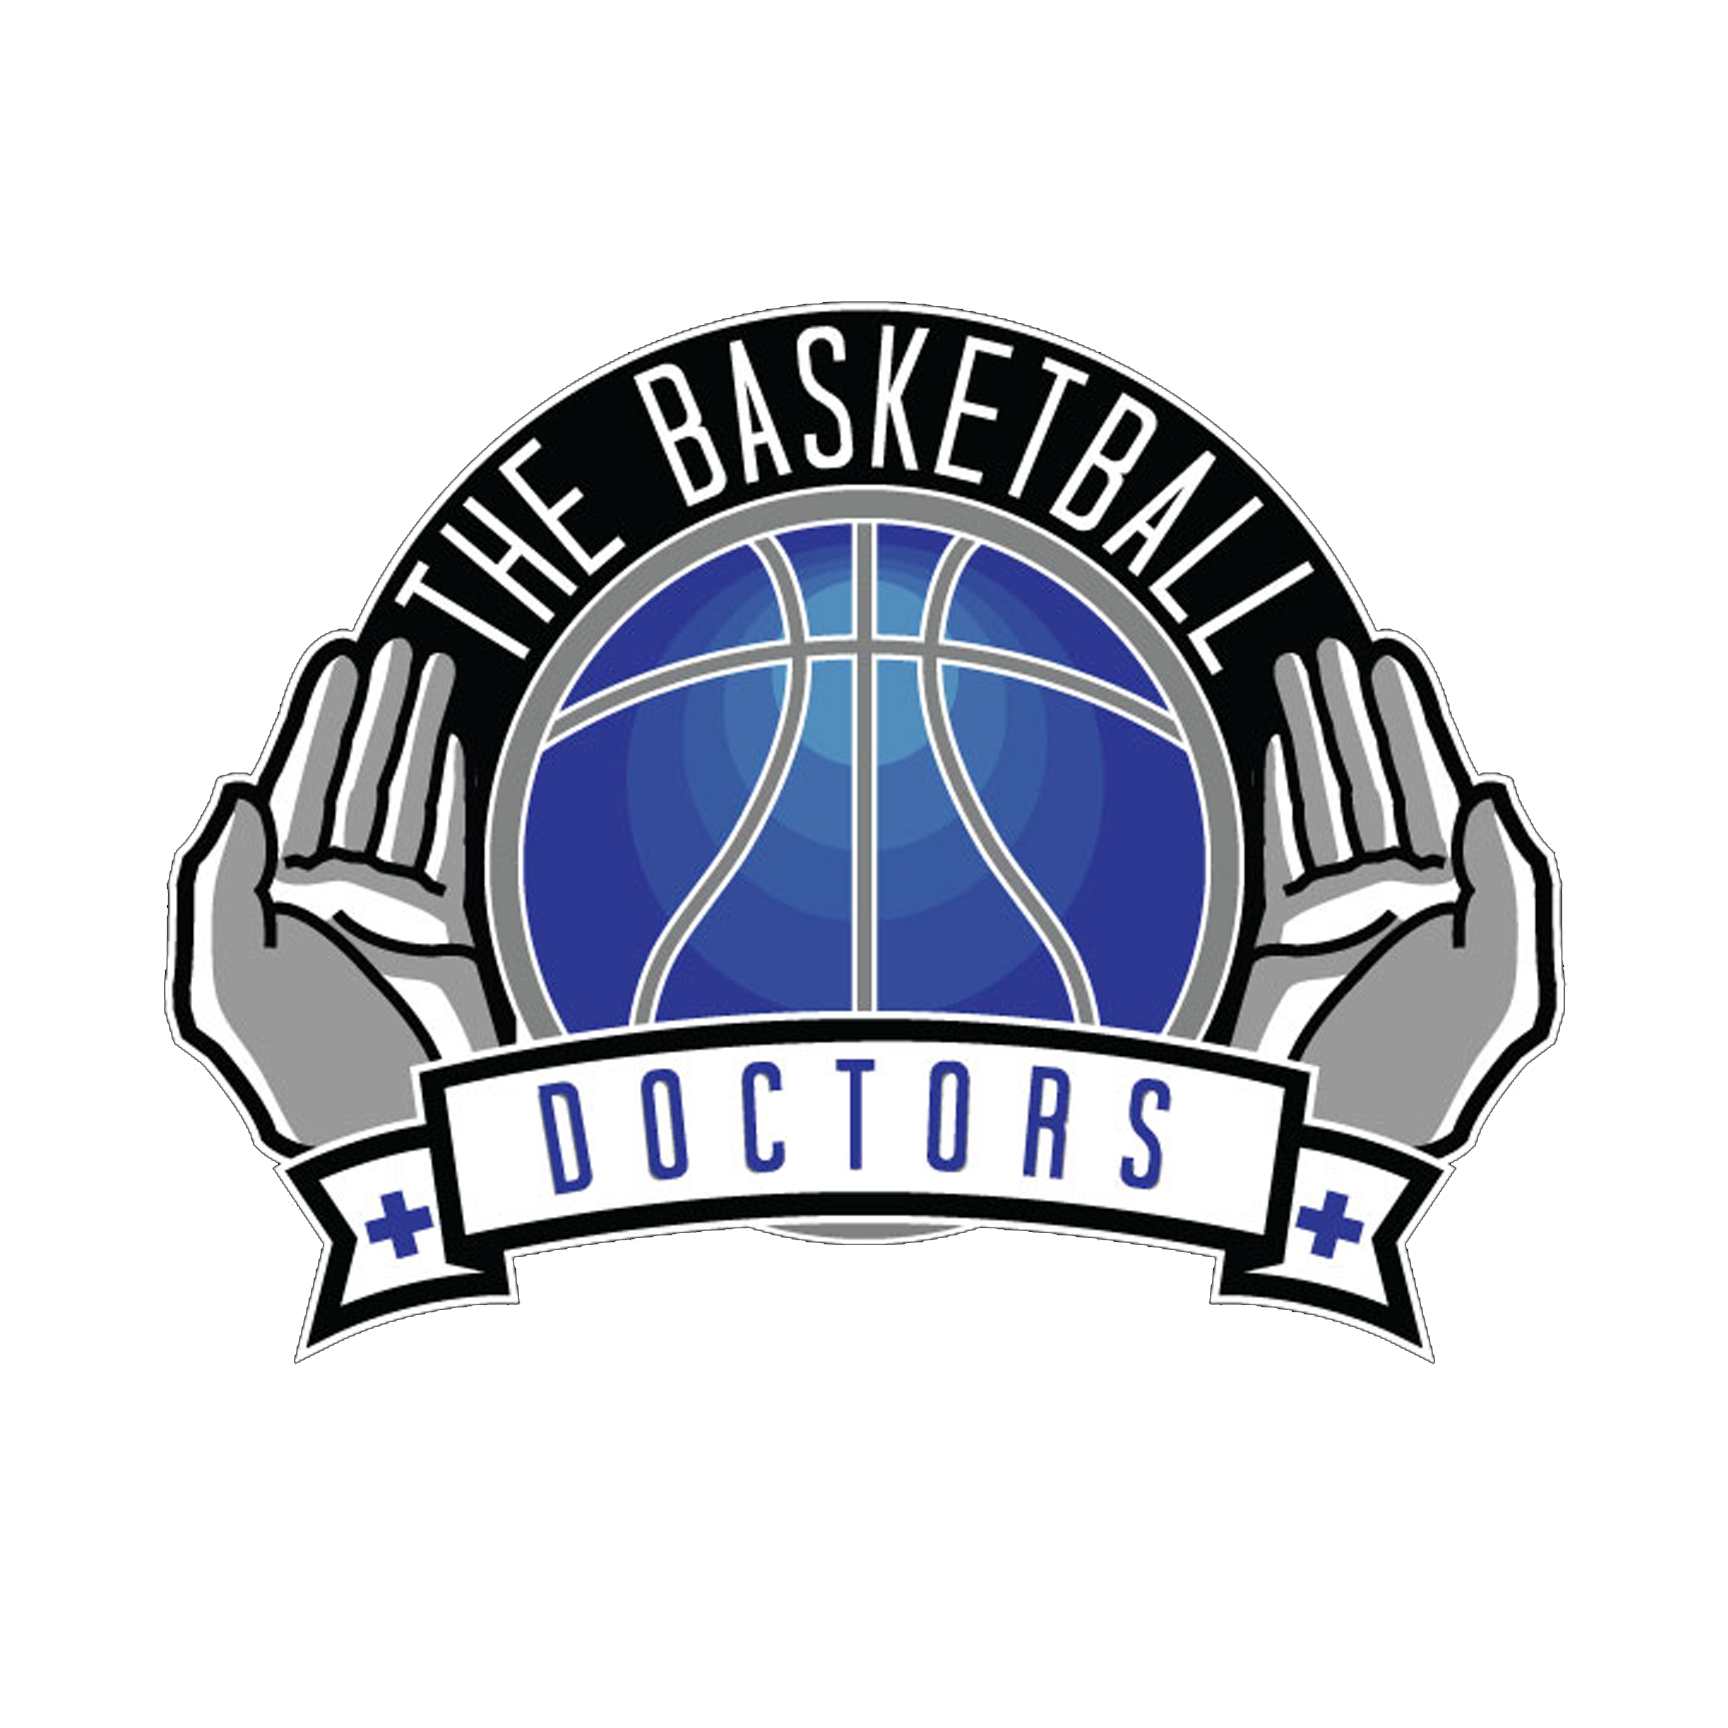 The Basketball Doctors